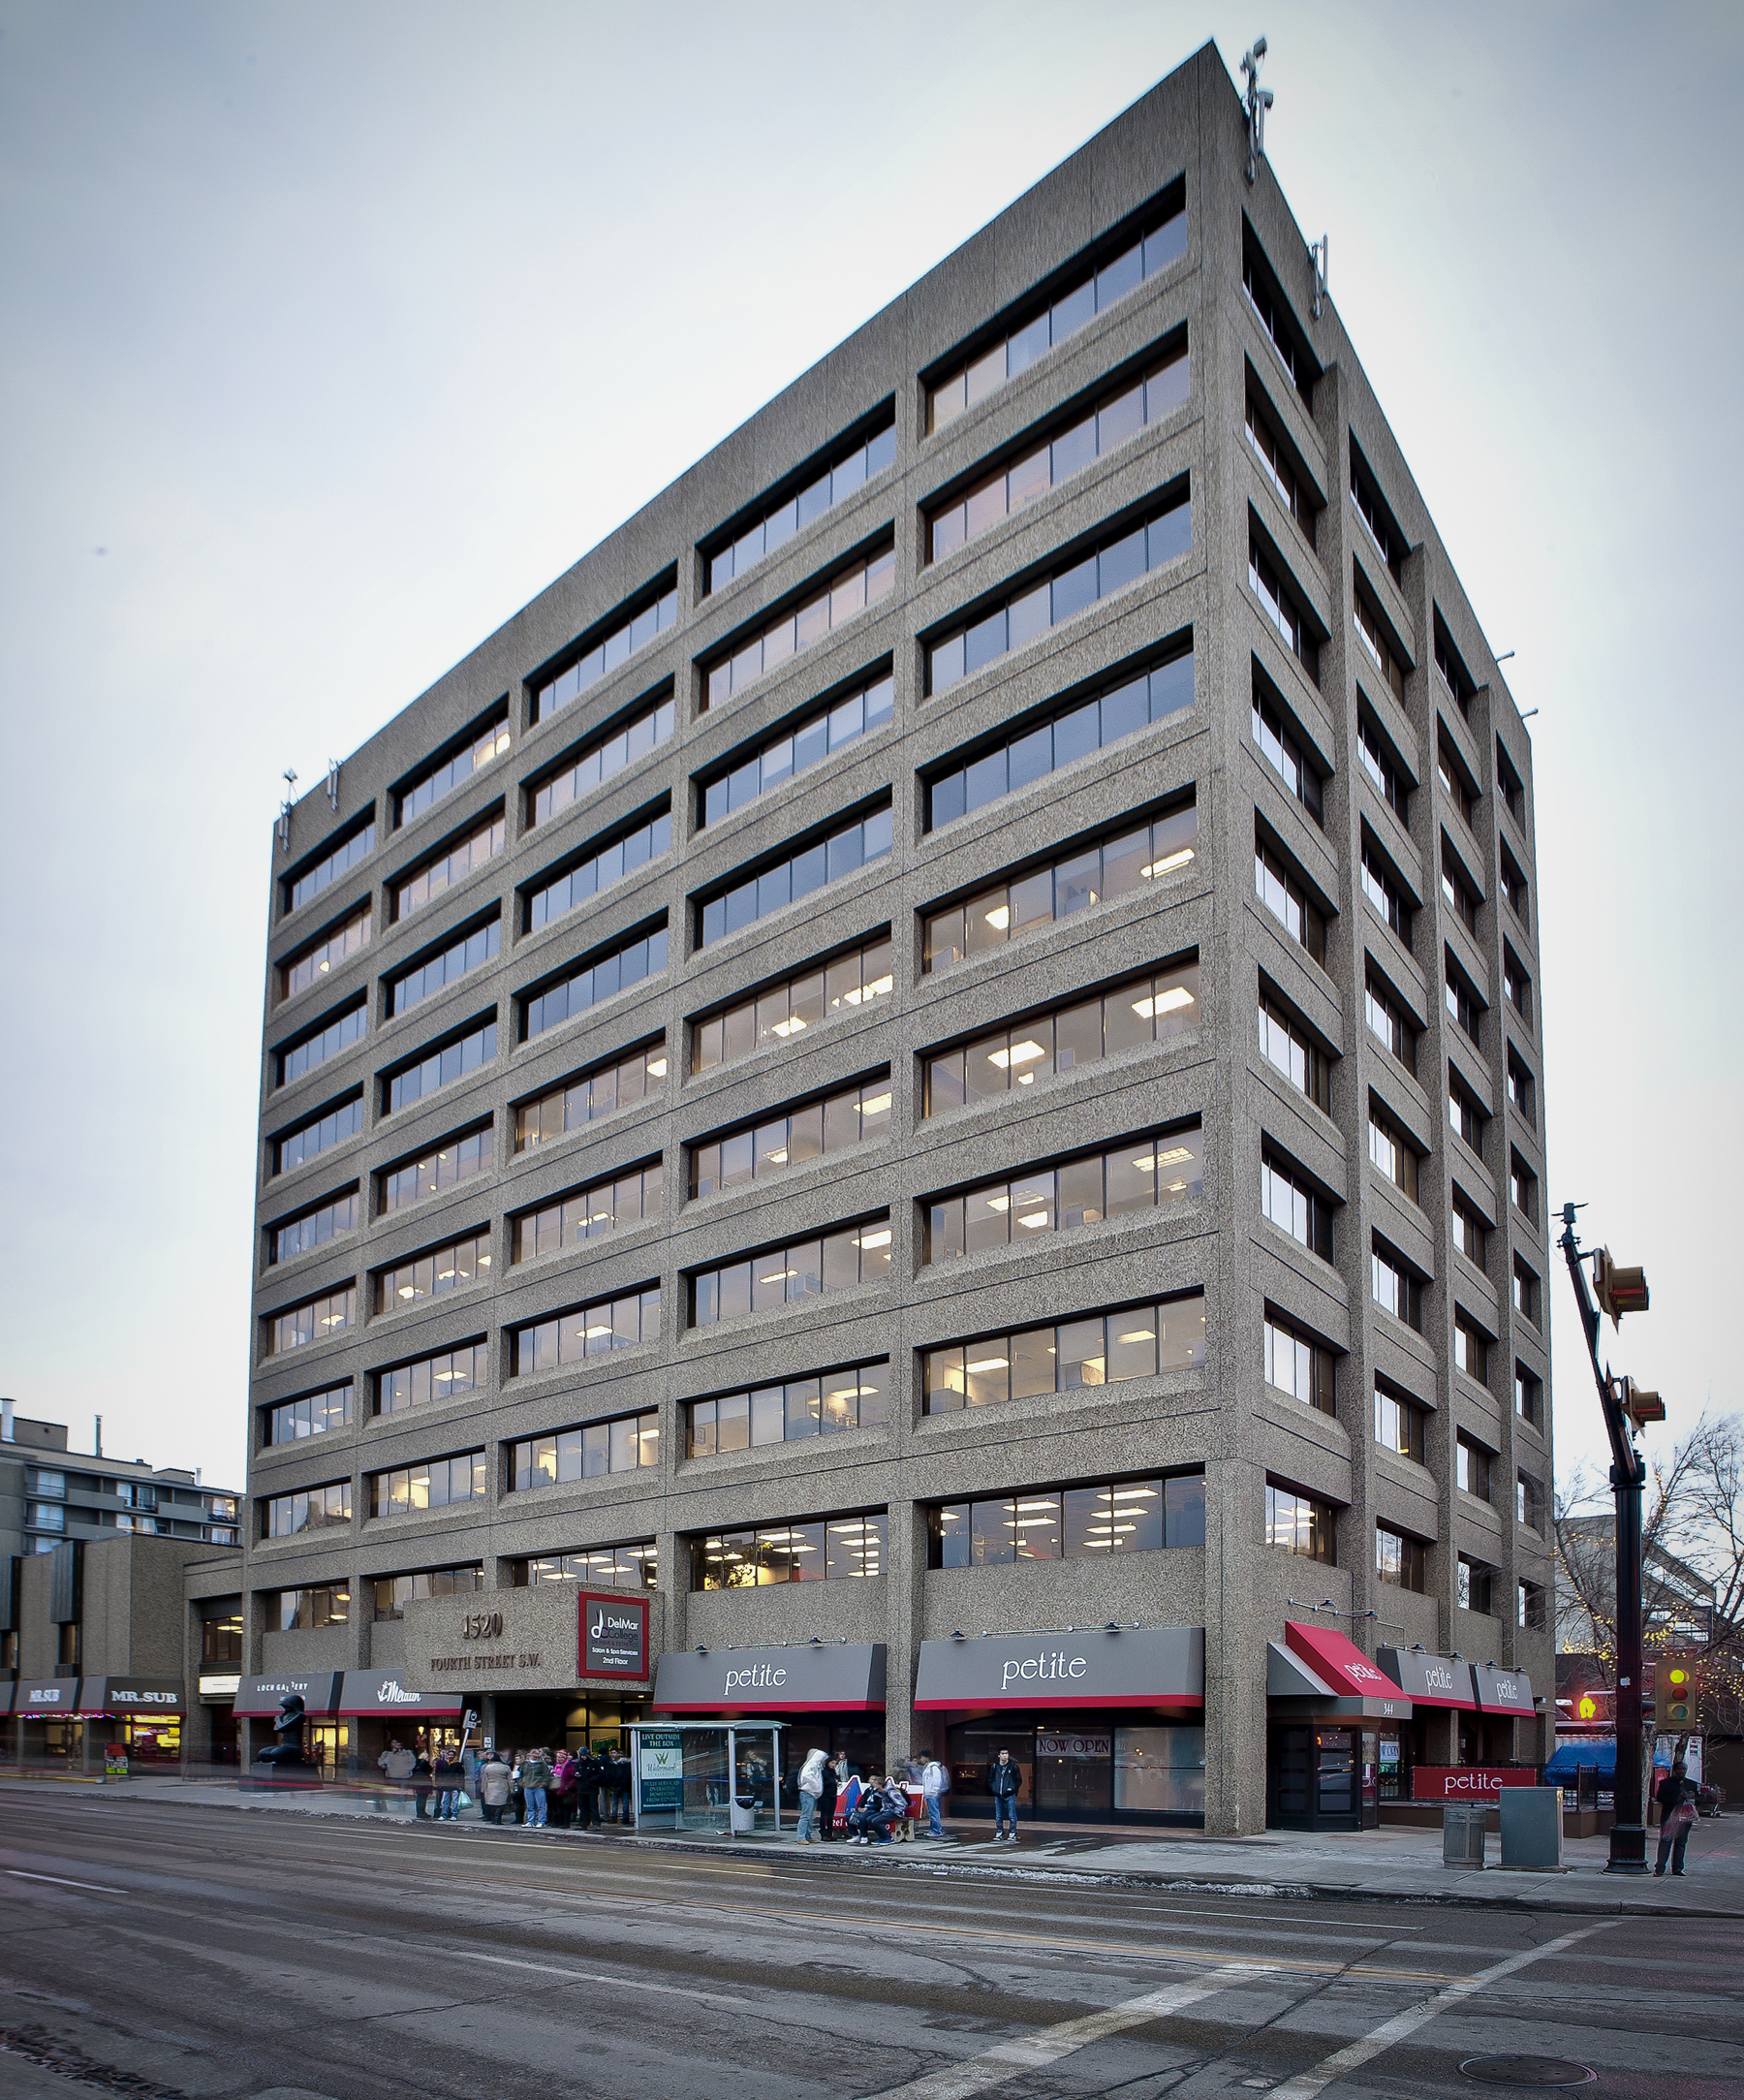 Grosvenor Americas has acquired 1520 Fourth Street, a 106,000 SF office building with ground-floor retail space, in Calgary's Beltline district.